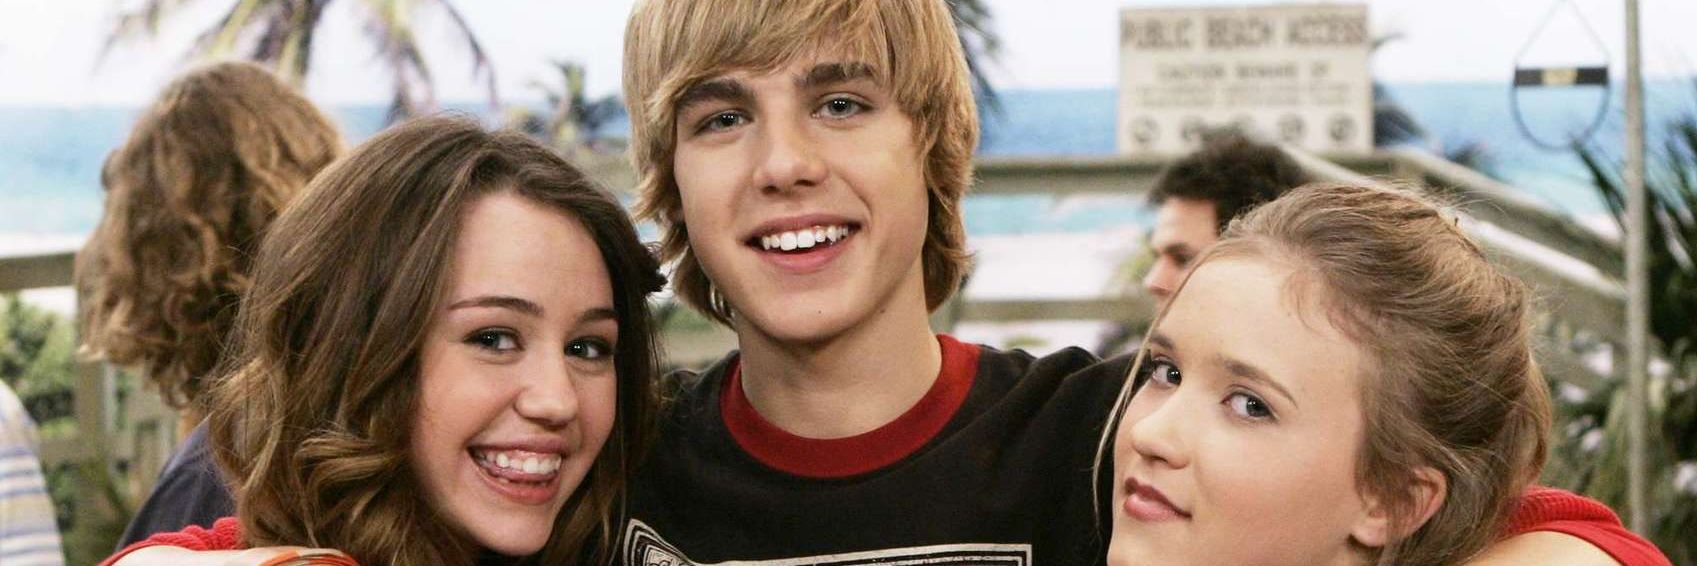 Hannah Montana' Cody Linley Reflects Time Miley